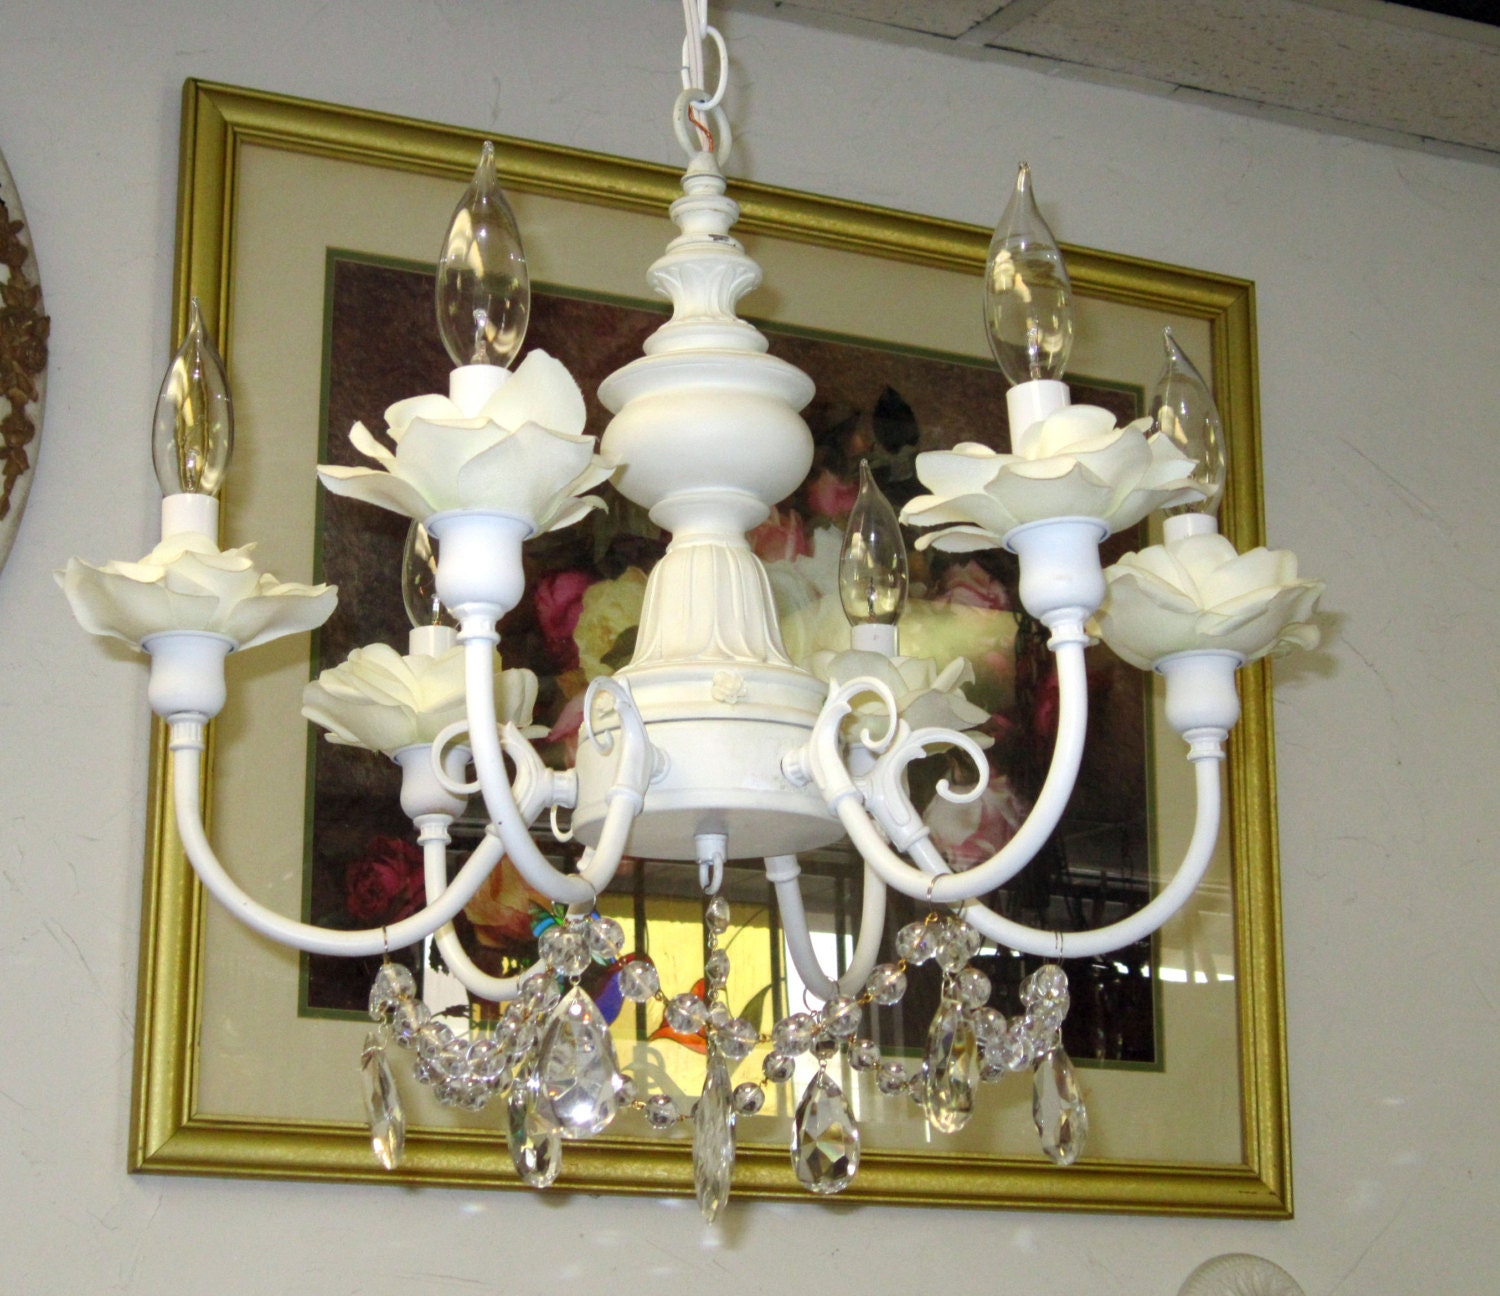 Trendy Chandeliers: Shabby Chic White 5 Light Chandelier With Cream Silk Flowers